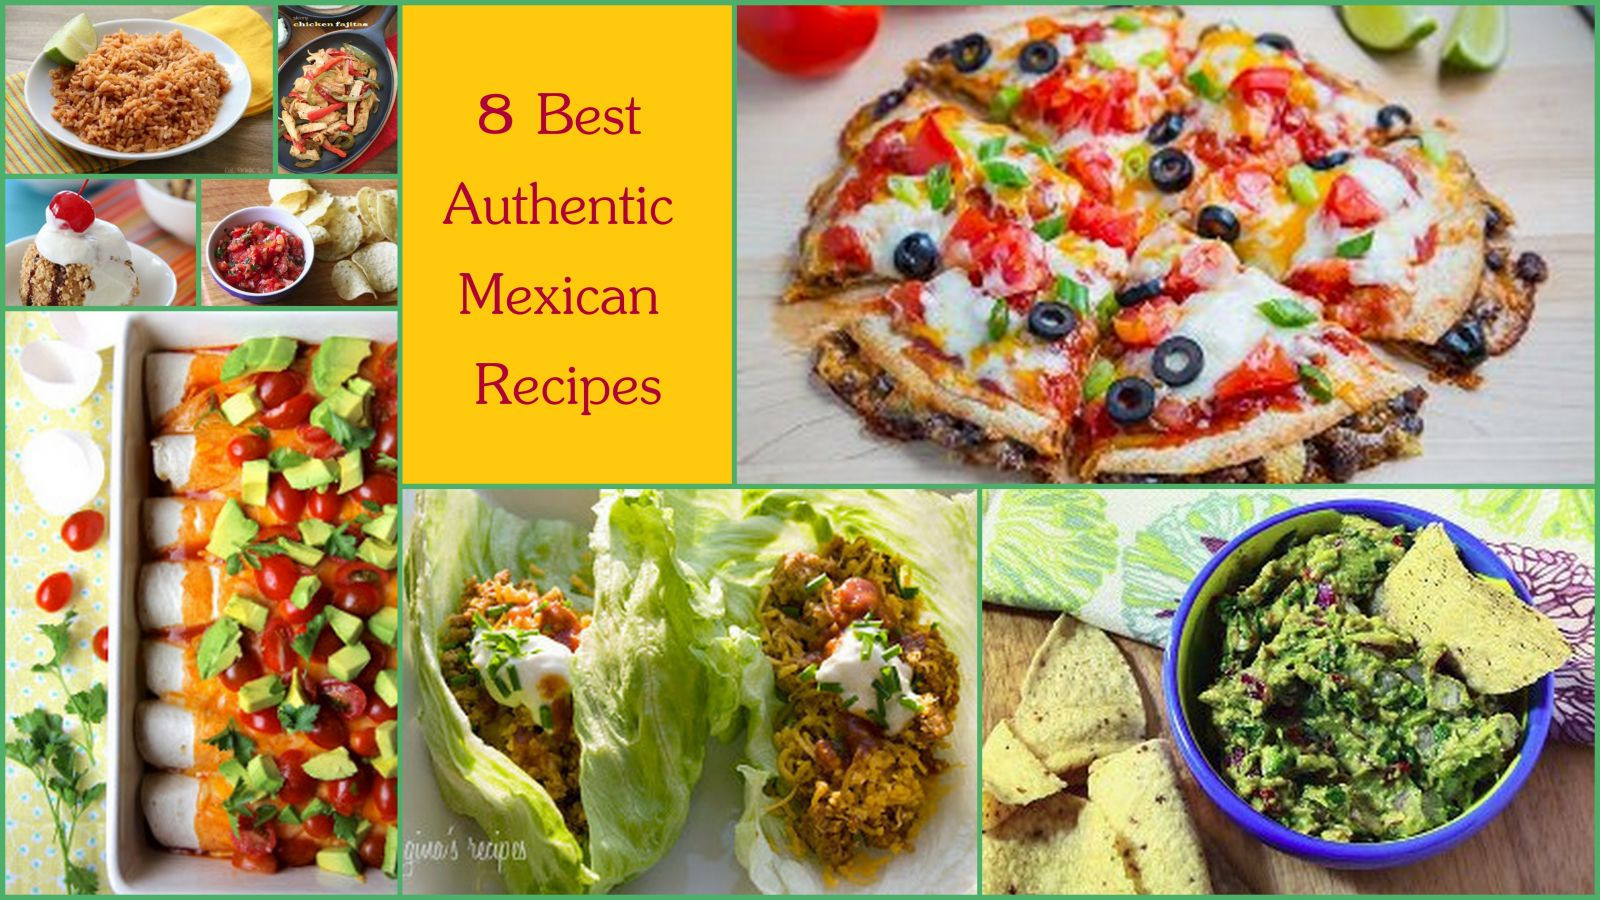 Healthy Mexican Food Recipes  8 Best Authentic Mexican Recipes